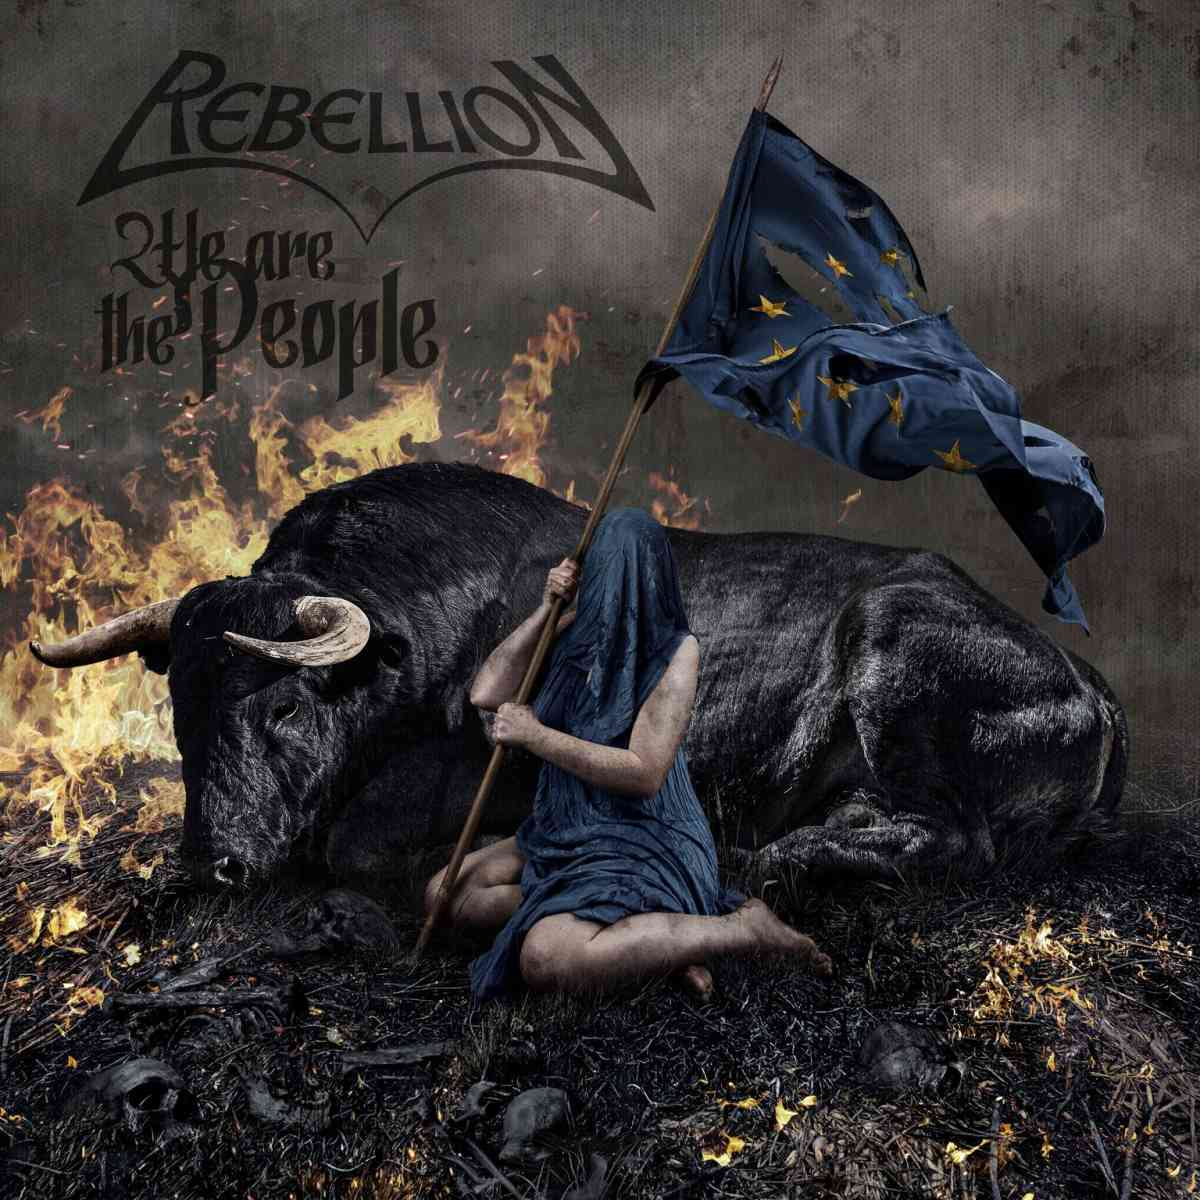 rebellion - we are the people - album cover